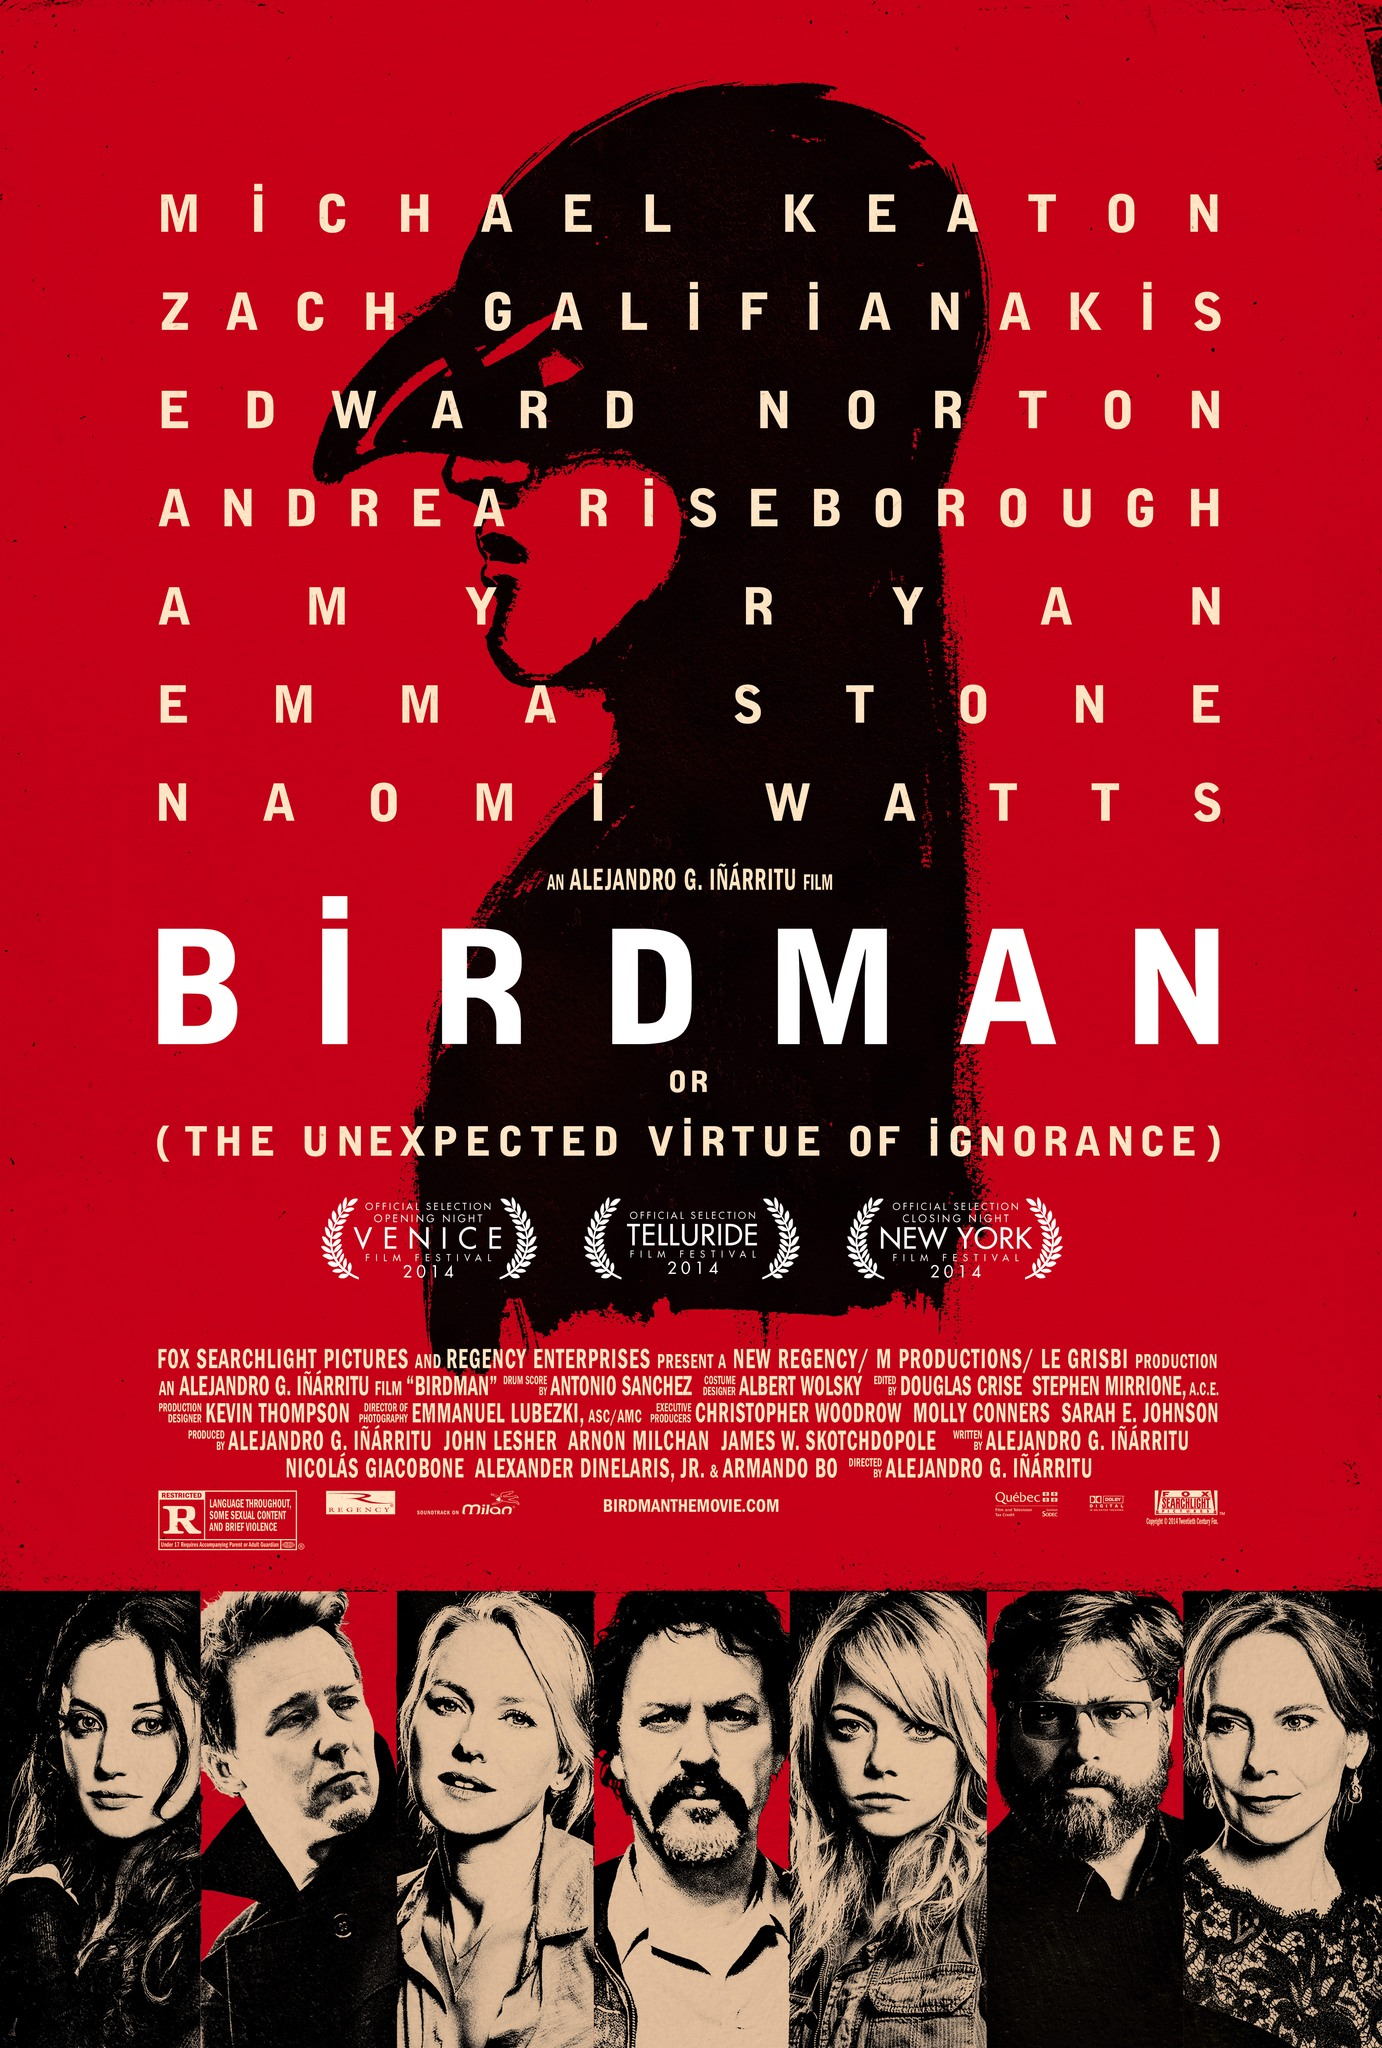 Image result for birdman movie poster""